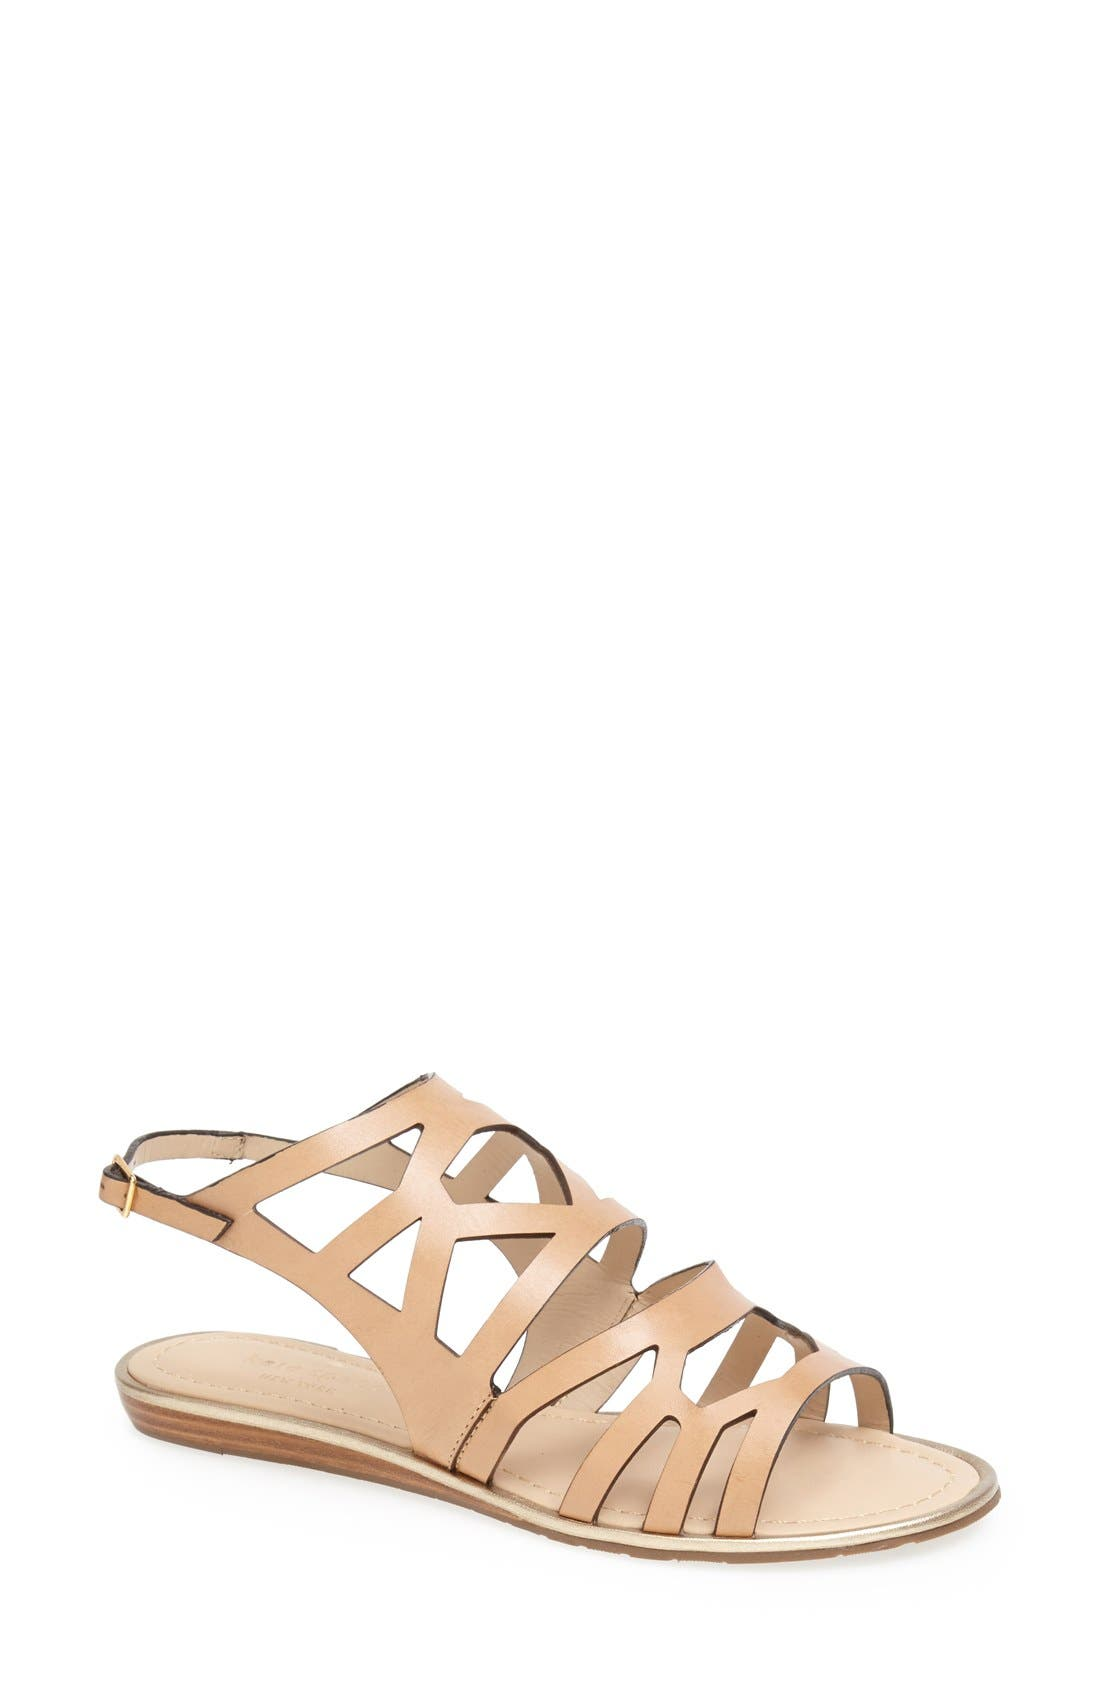 Main Image - kate spade new york 'aster' flat sandal